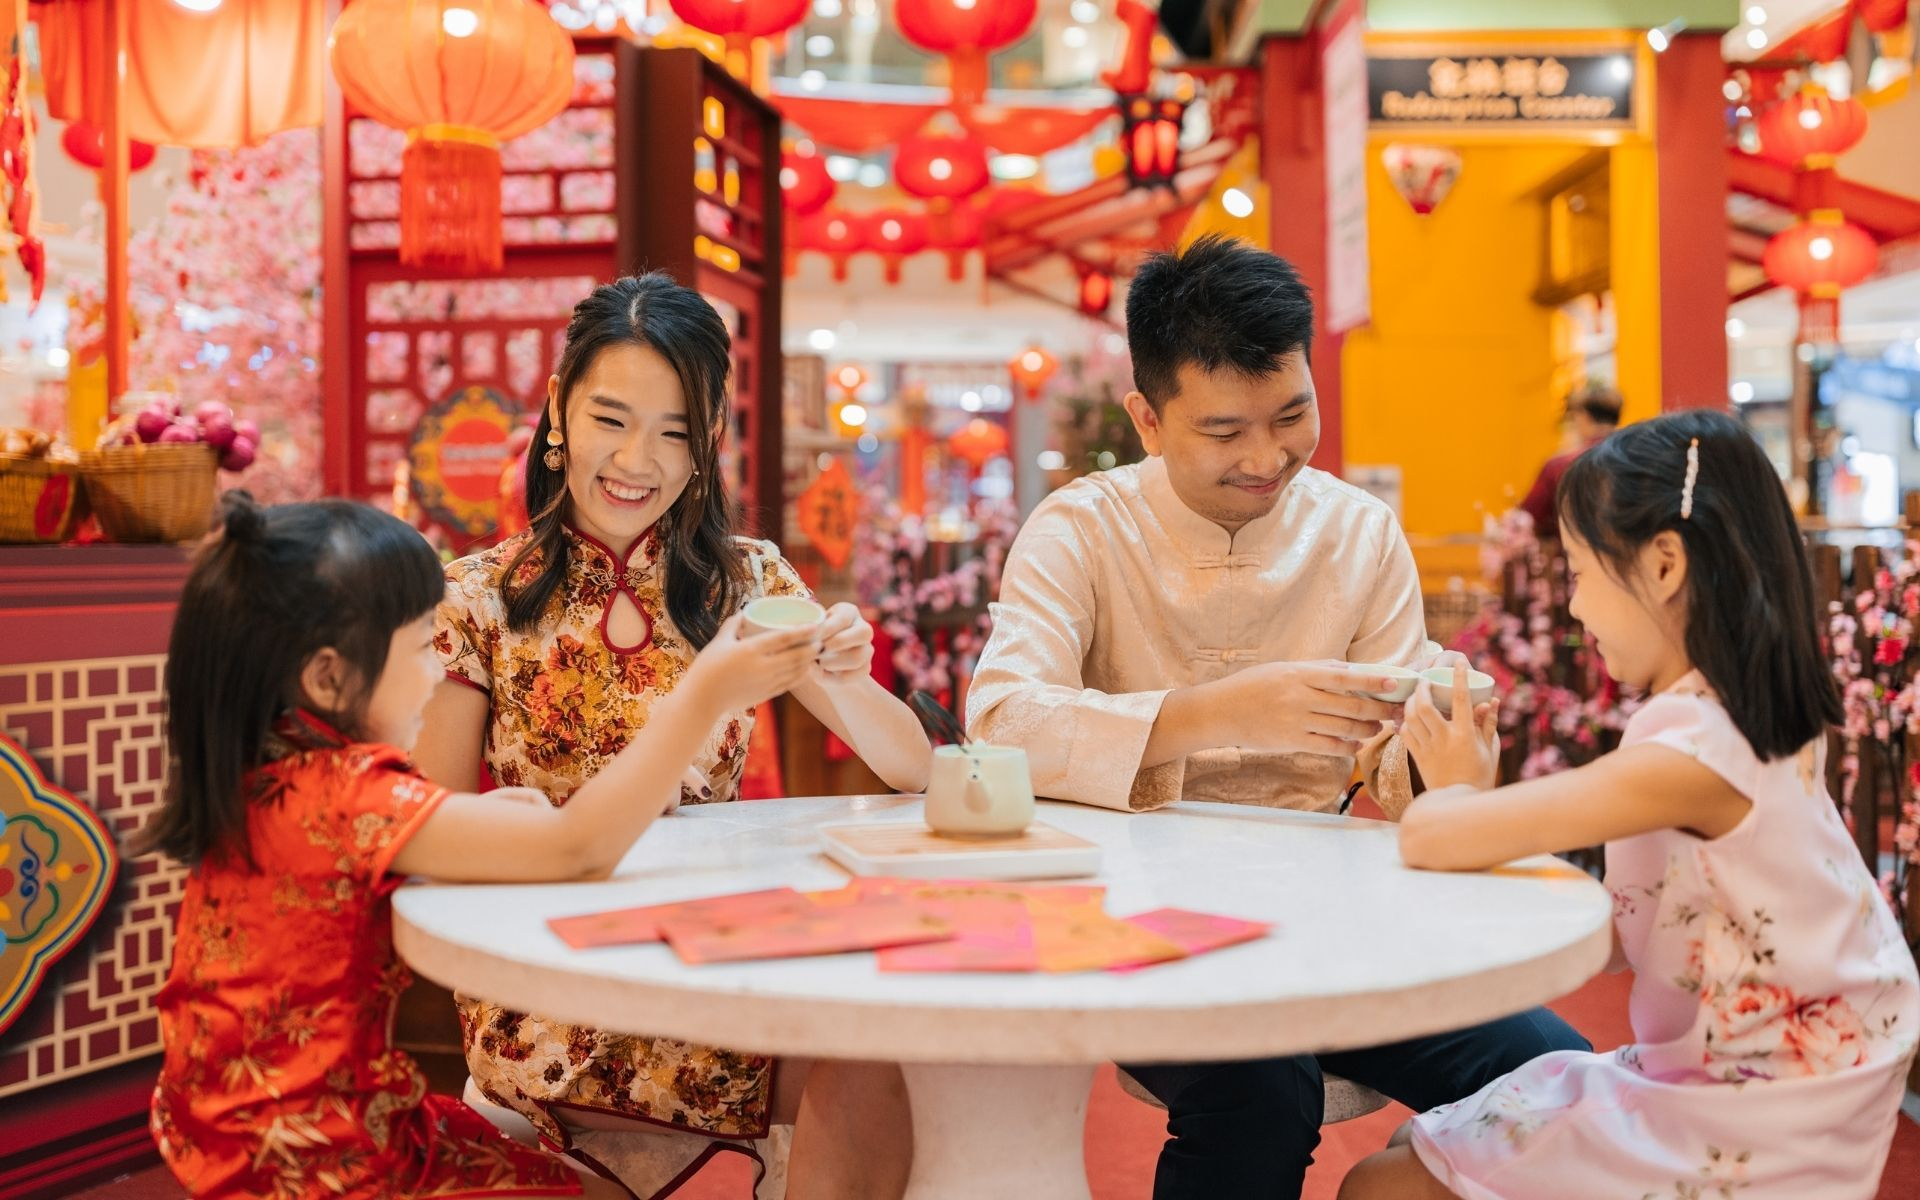 Chinese New Year 2021 Decorations In KL & PJ Shopping Malls